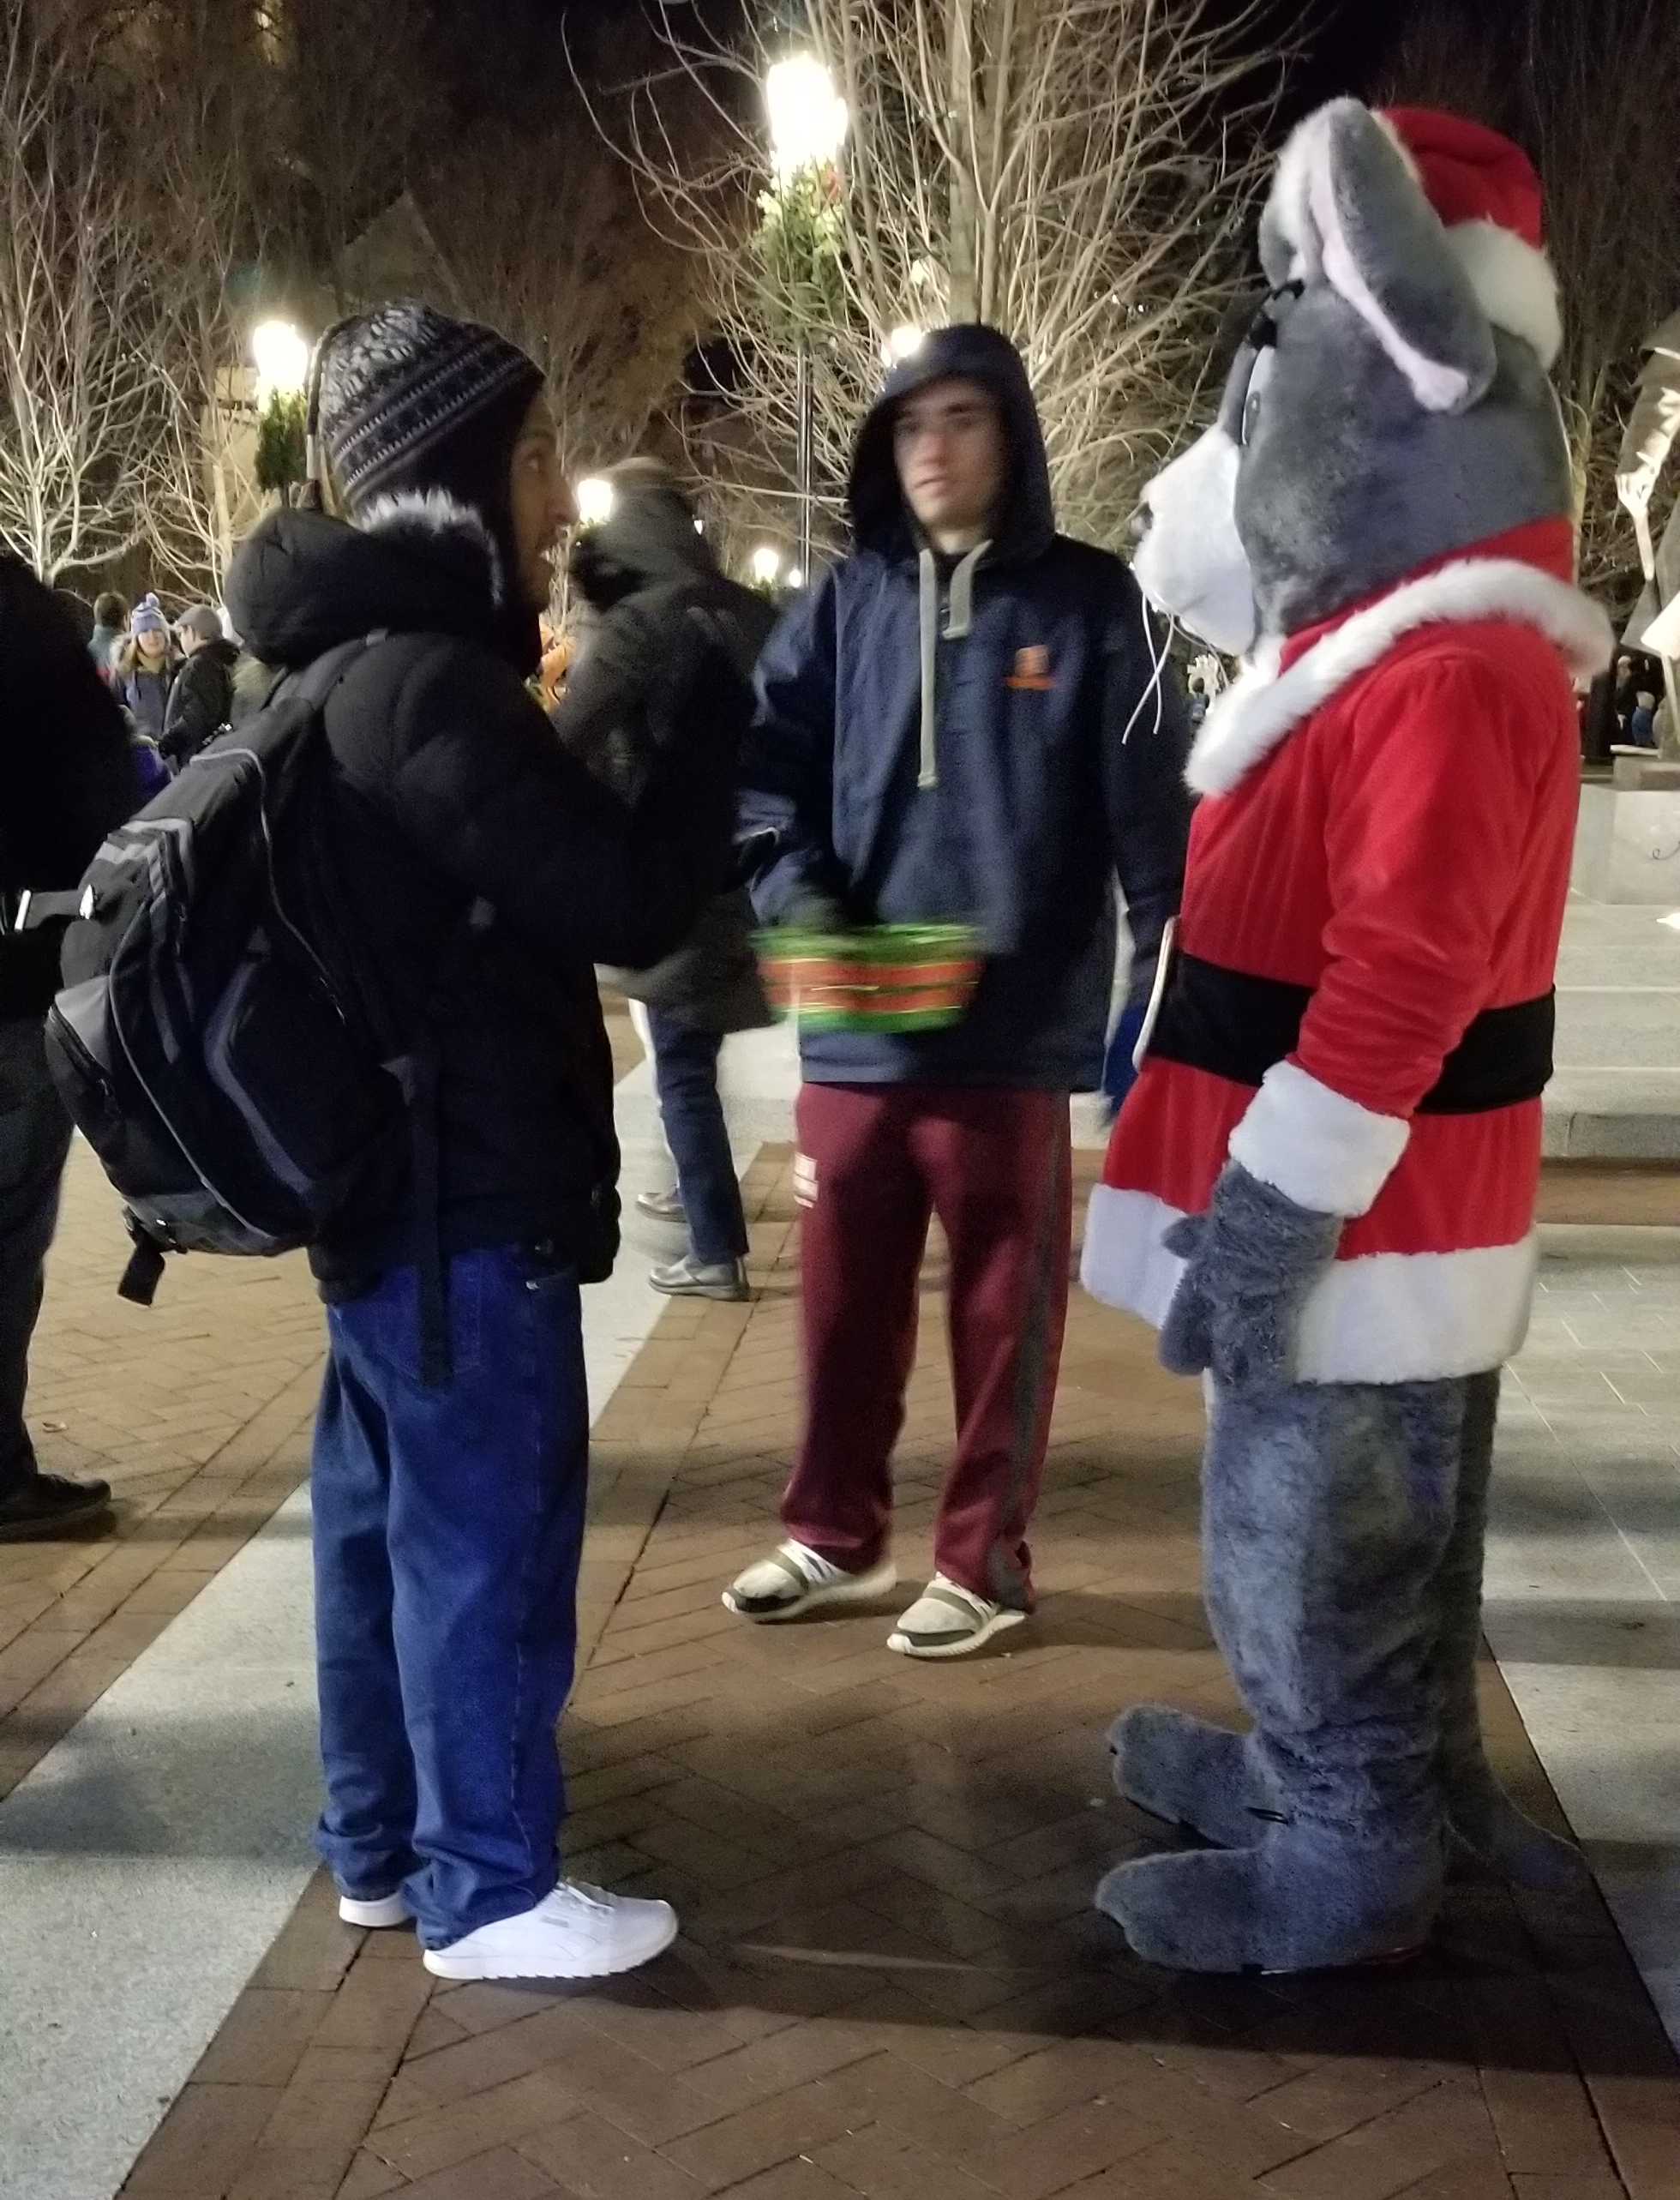 Here's Jay talking with the guy in the mouse costume. They talked about Christ and salvation for over half an hour!